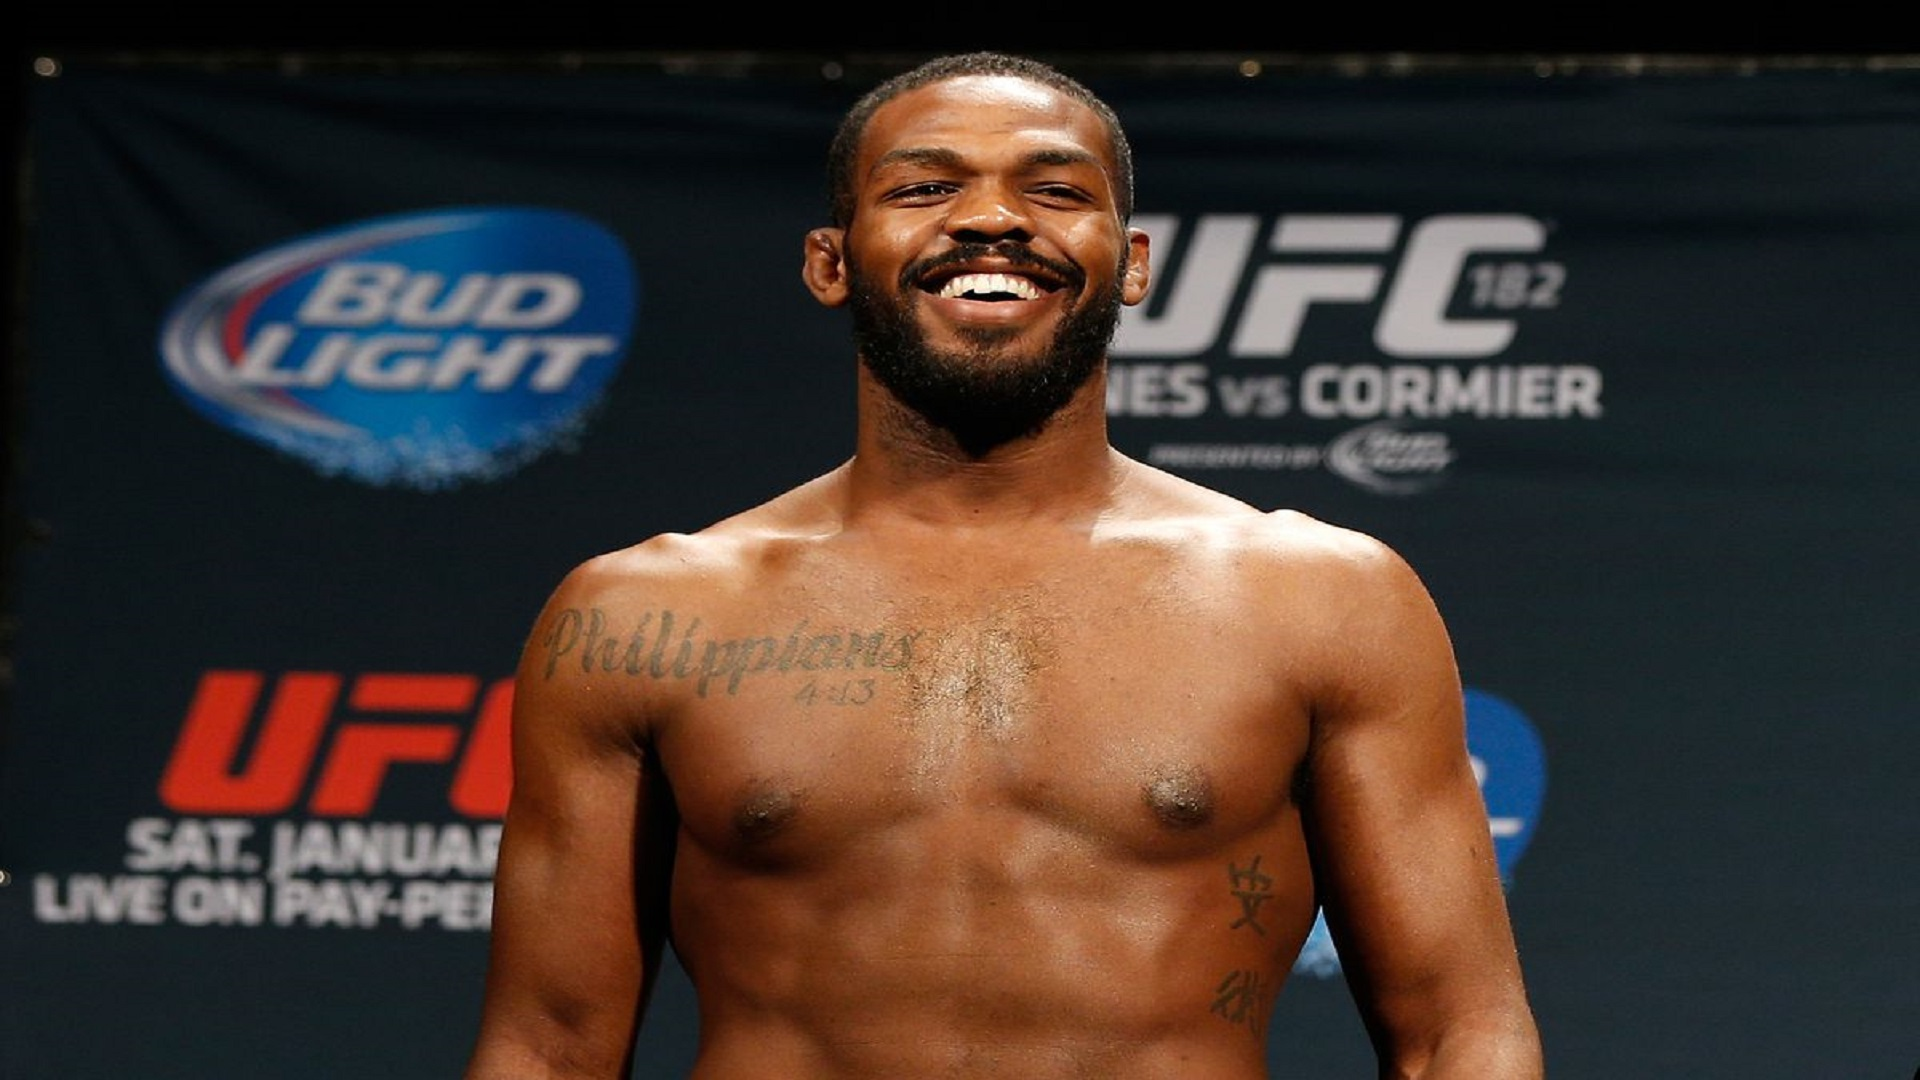 Jon-Jones-UFC-Arrested-March-2020